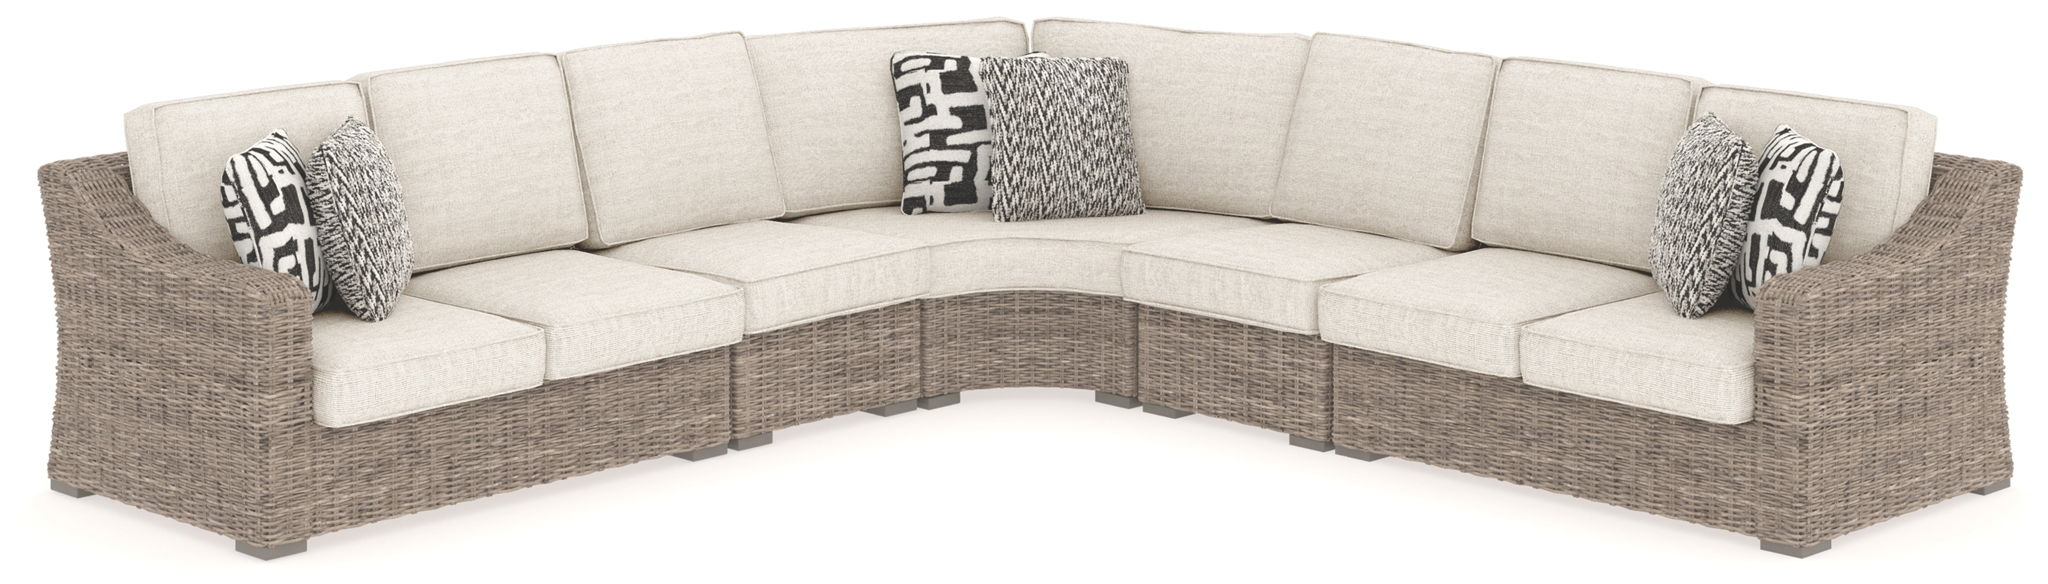 Beachcroft Outdoor Seating Set | Calgary's Furniture Store